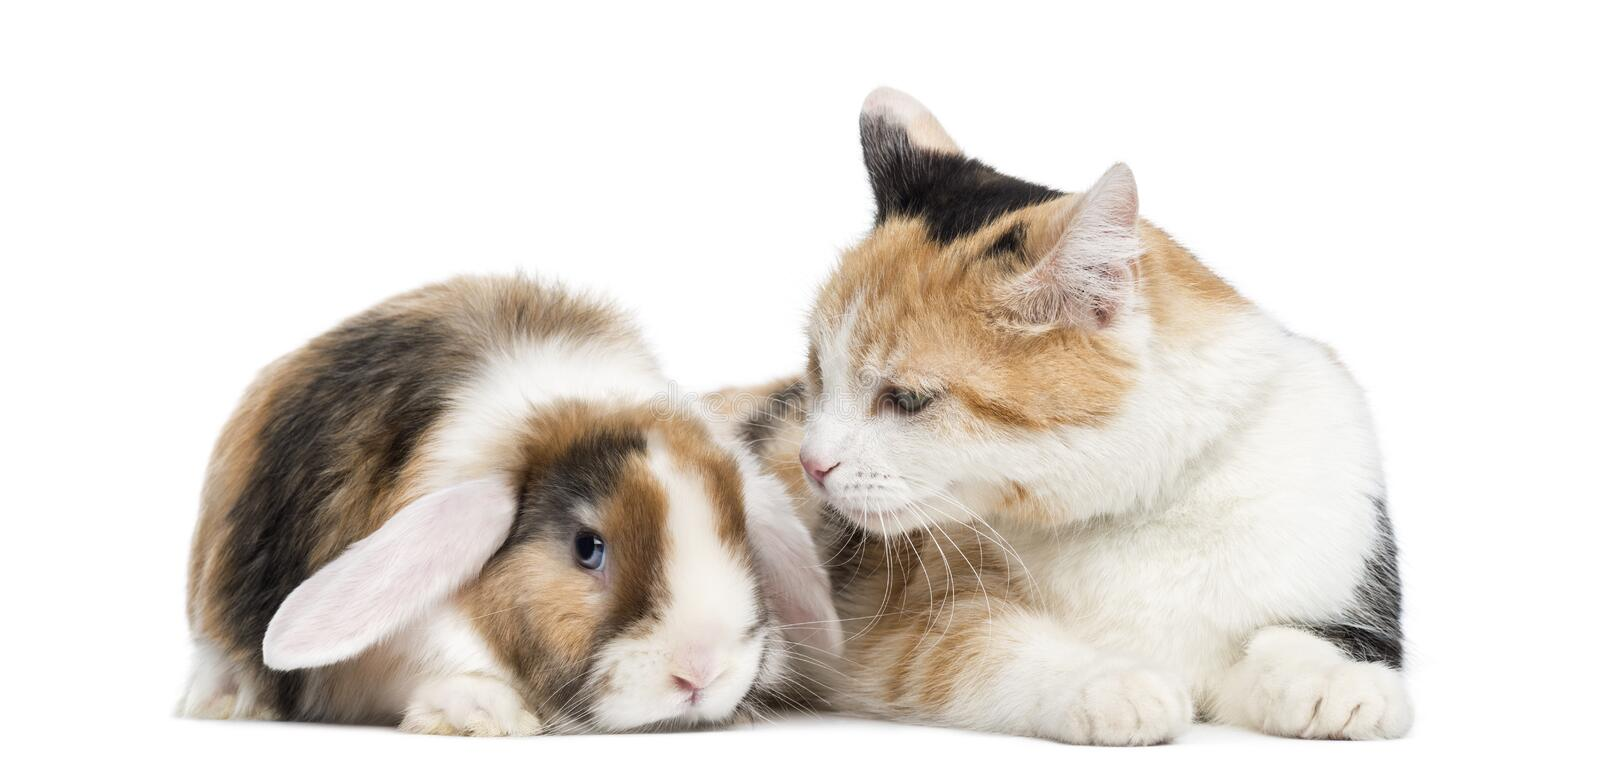 European shorthair and lop rabbit, isolated stock photography